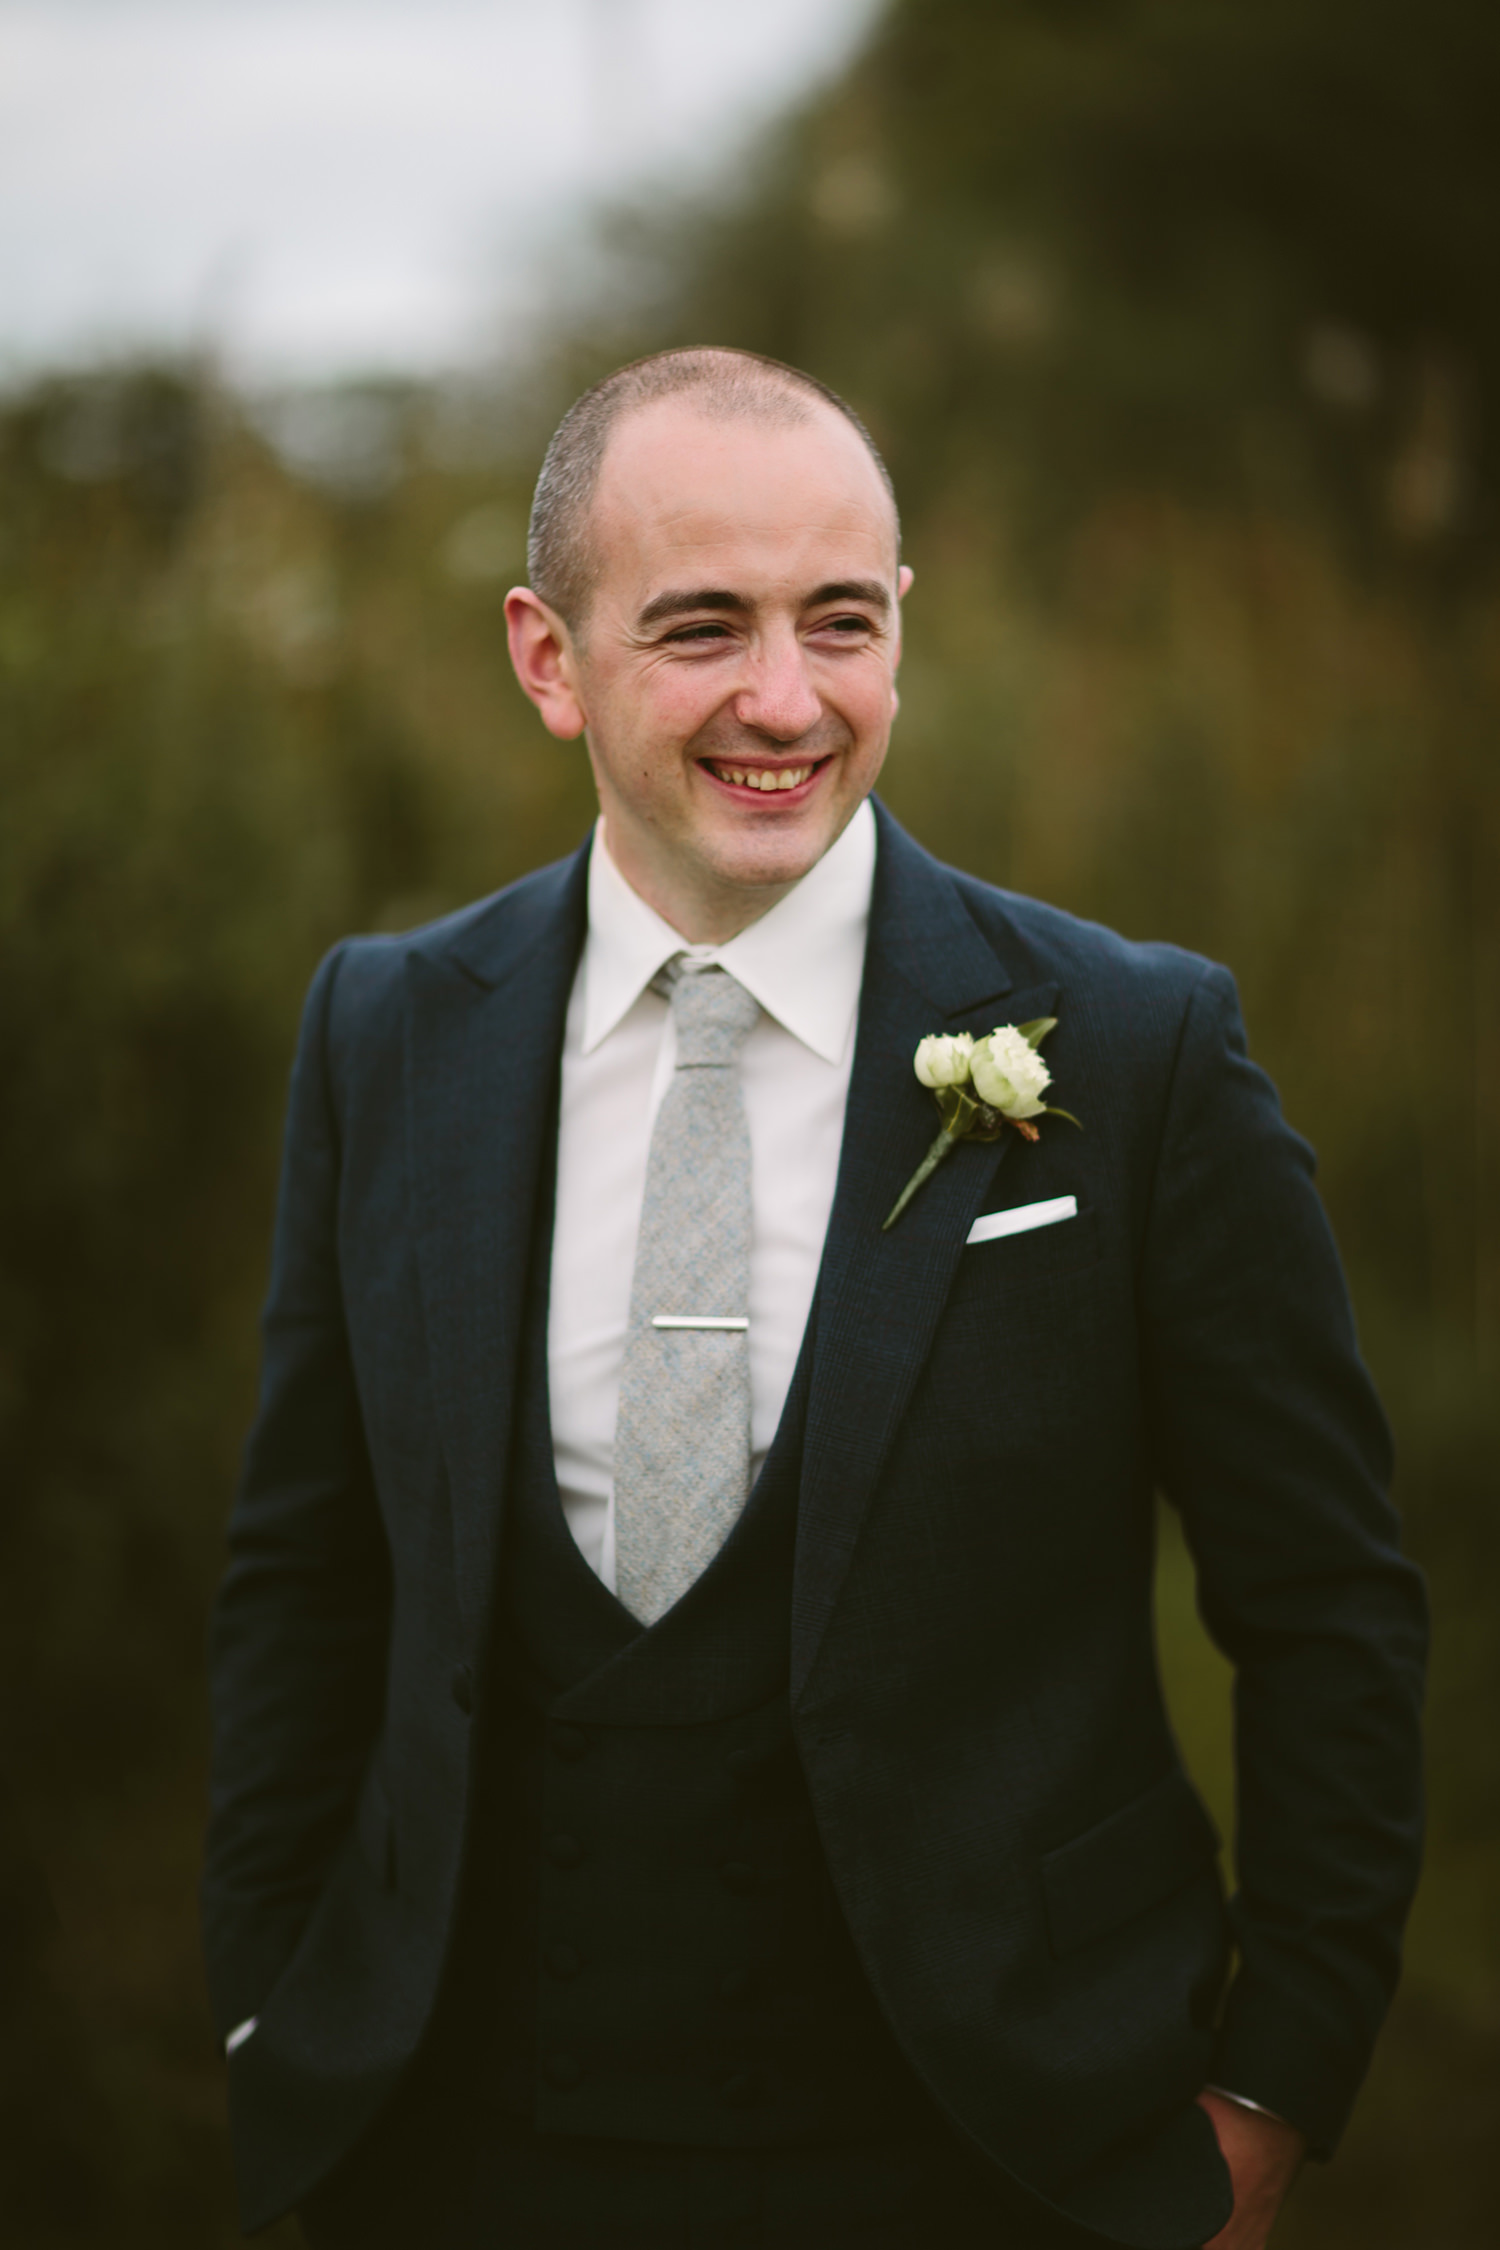 Northern Ireland Wedding Photographers Adam and Grace 0217